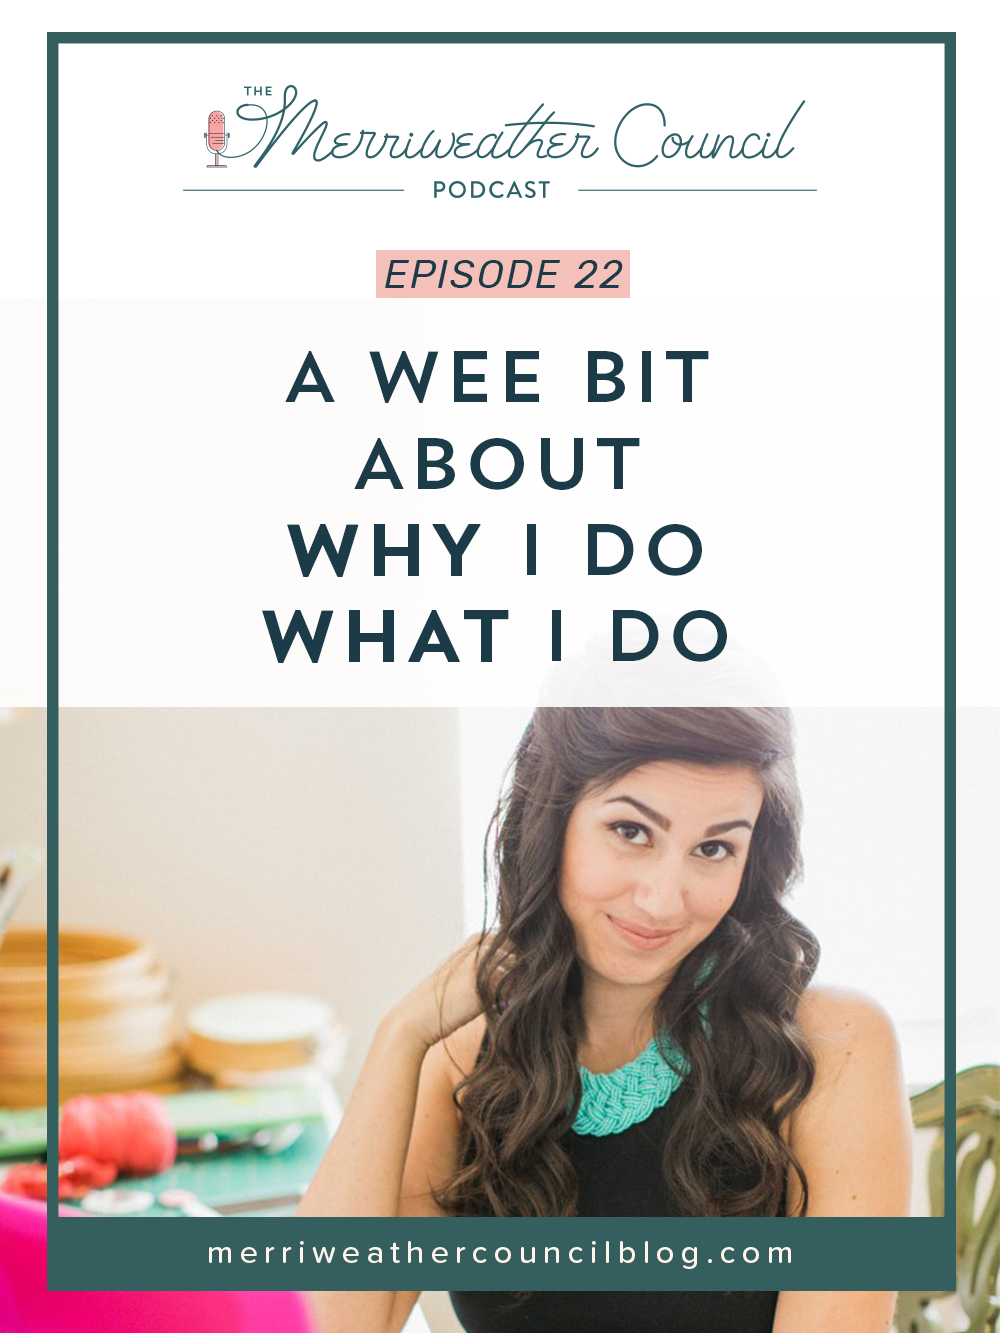 Episode 22: why i do what i do | The Merriweather Council Podcast